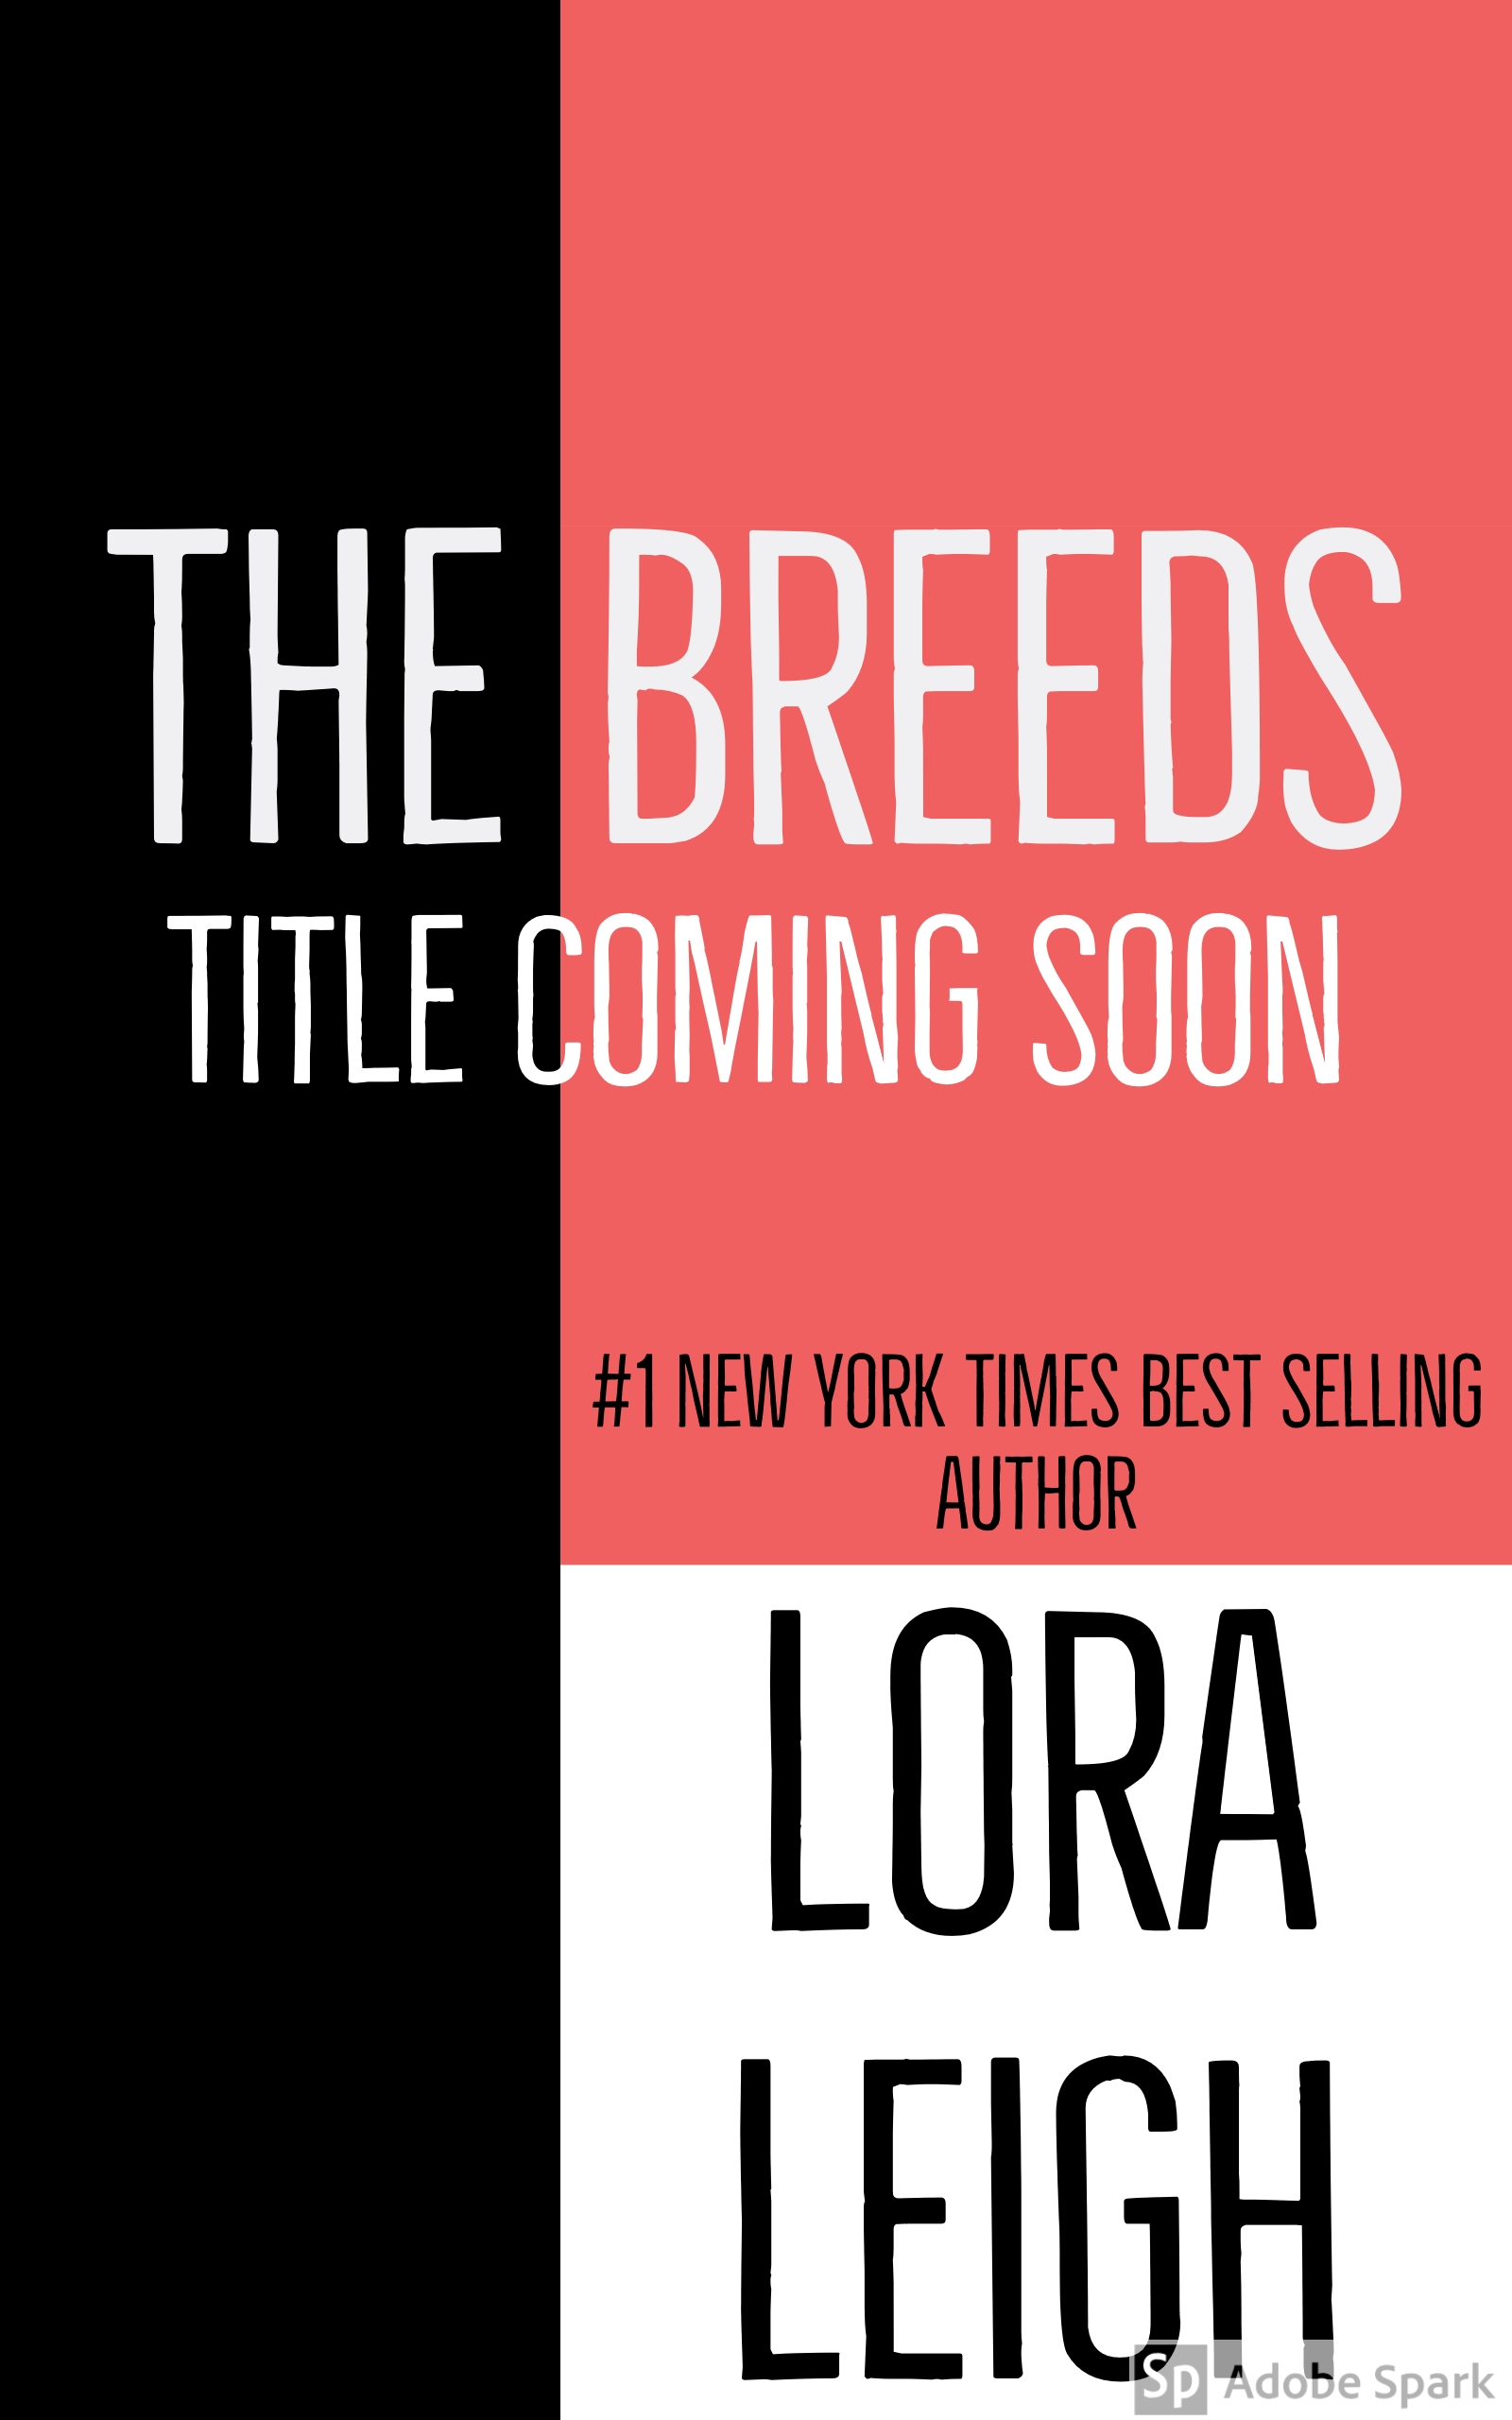 The Breeds Mock Cover 4